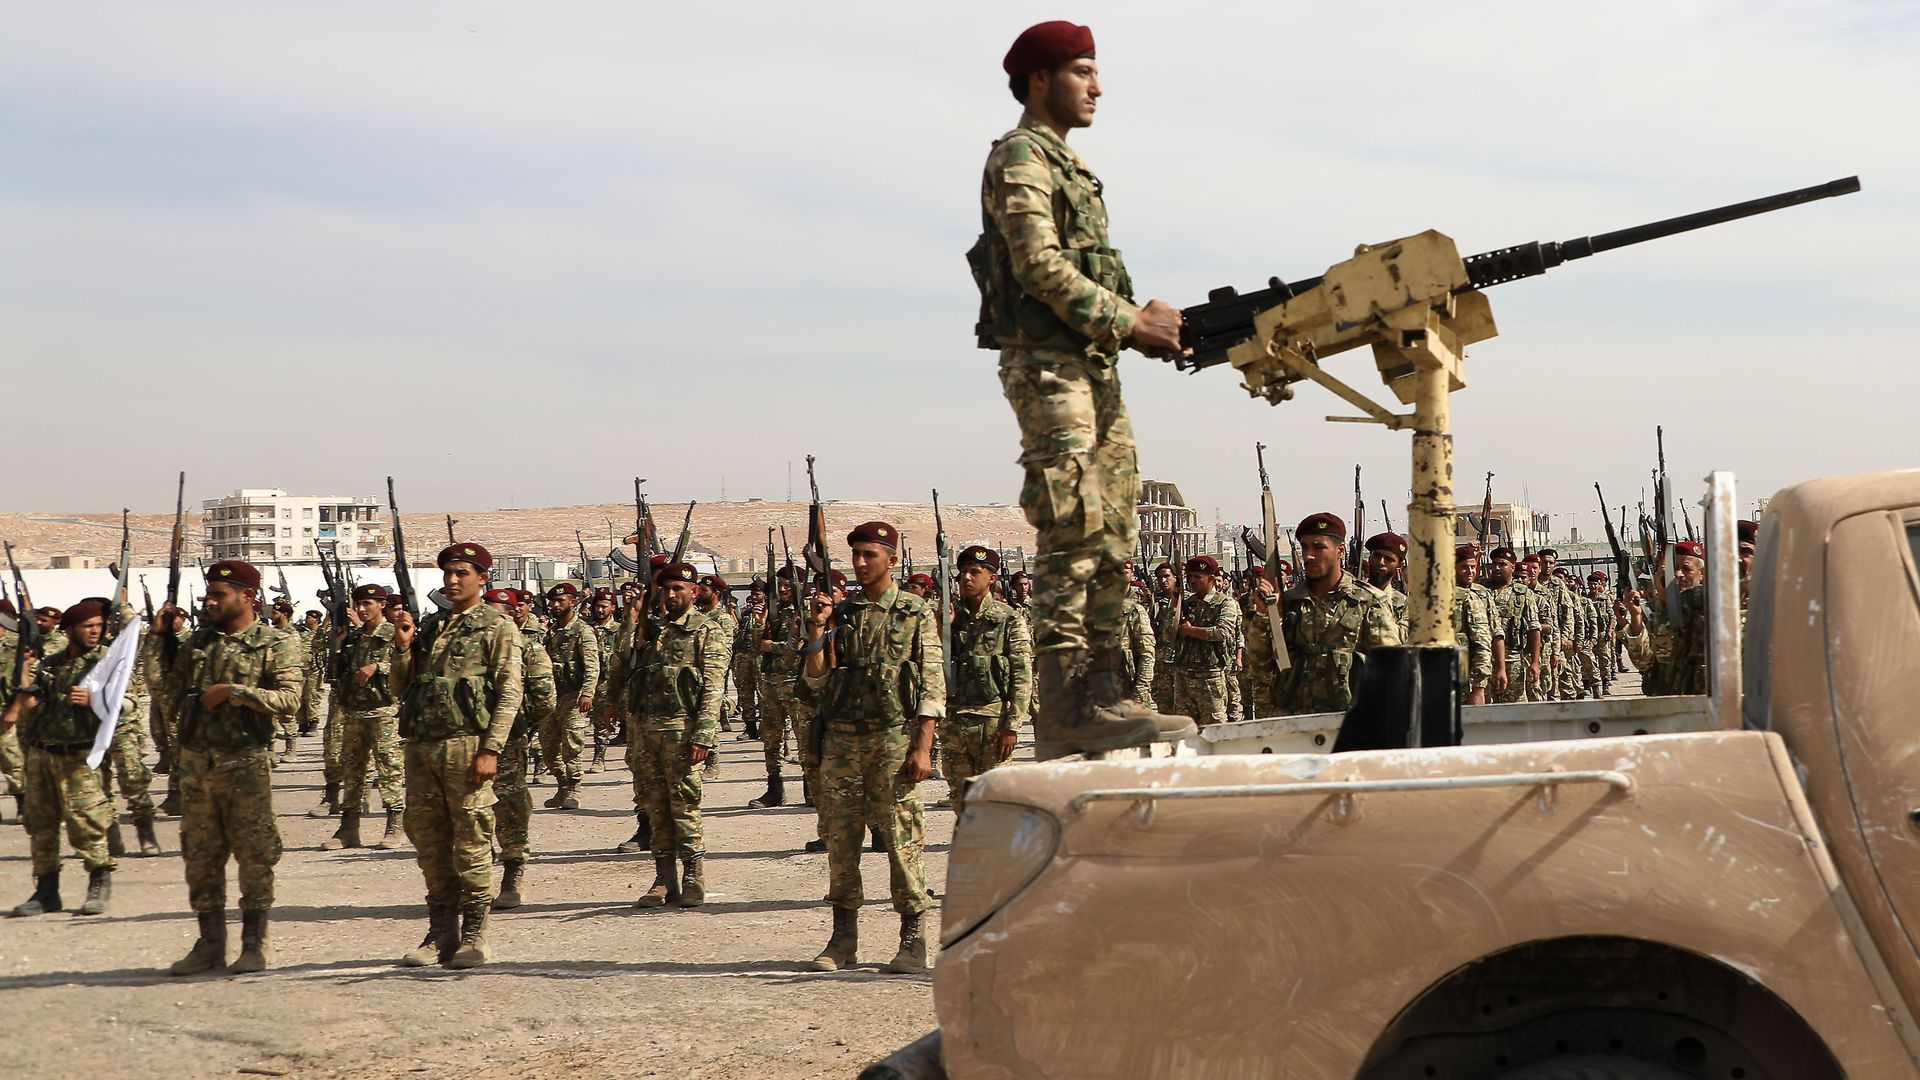 In this image, a soldier stands in the back of a truck while holding onto a stationary machine gun while rows of soldiers stand behind him